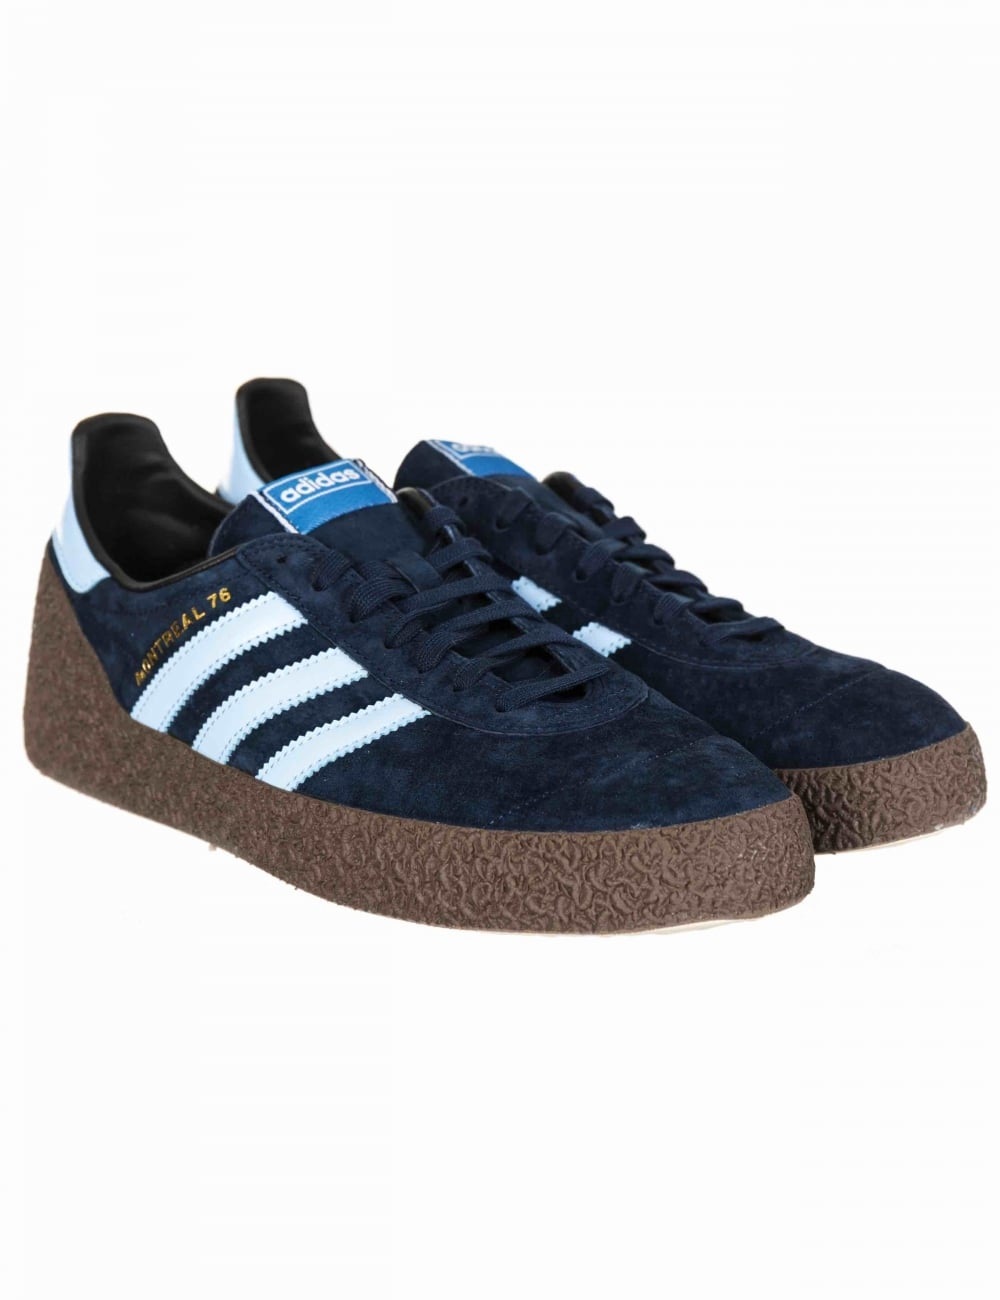 Adidas Originals Montreal  76 Trainers - Collegaite Navy Clear Sky ... a2a038b99750